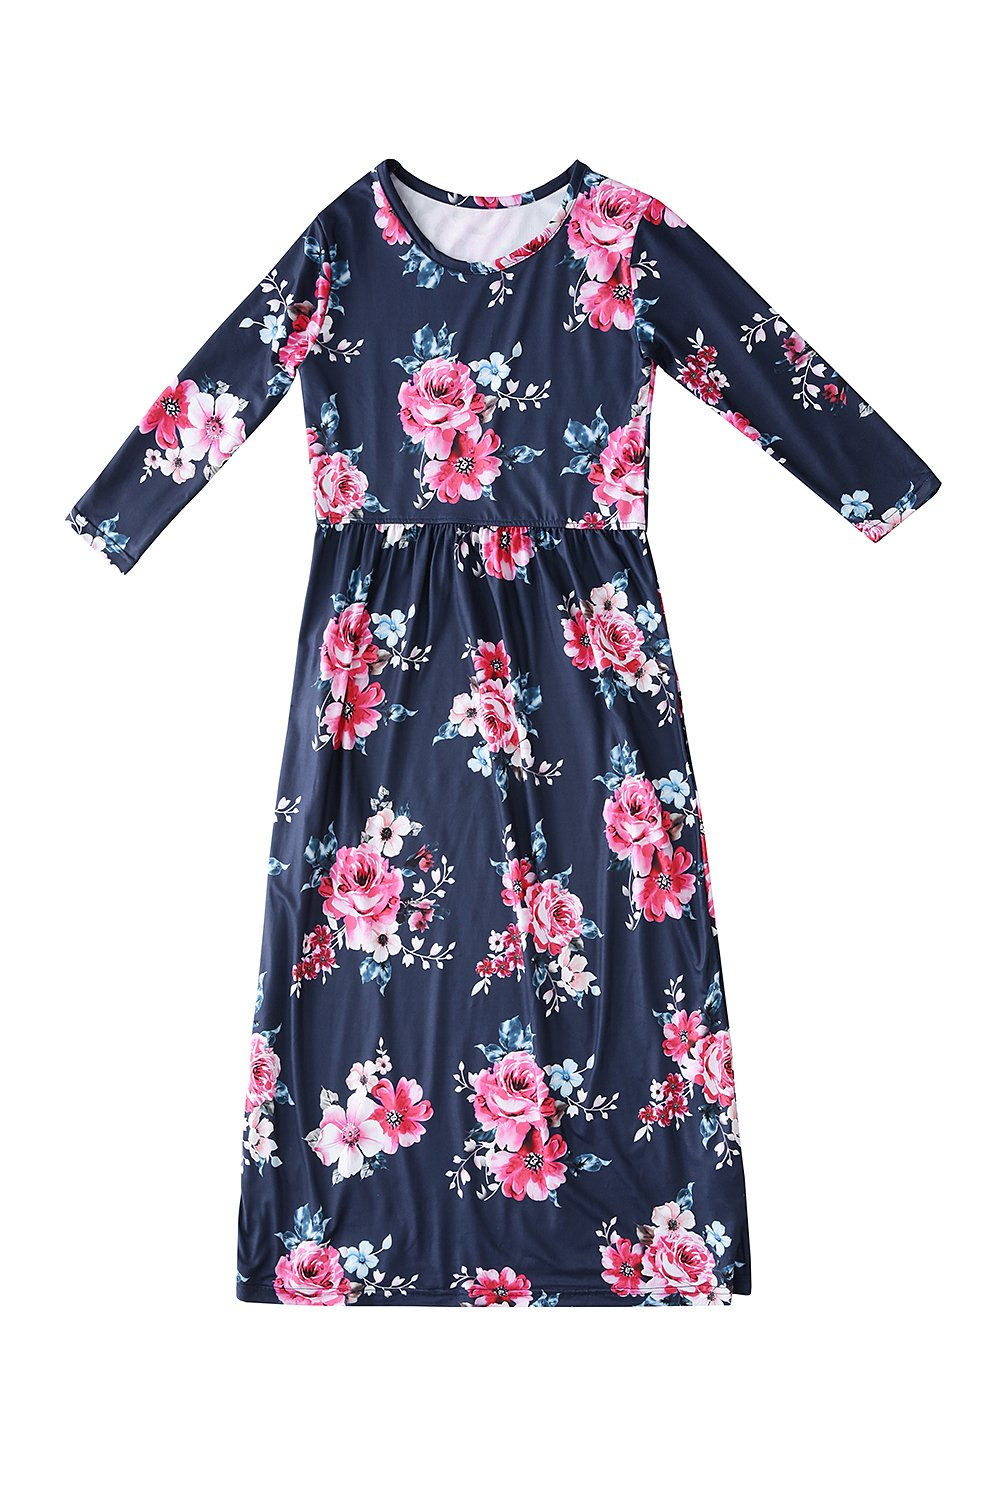 Amazon Foshow Girls Short Sleeve Long Maxi Dress Floral Flower